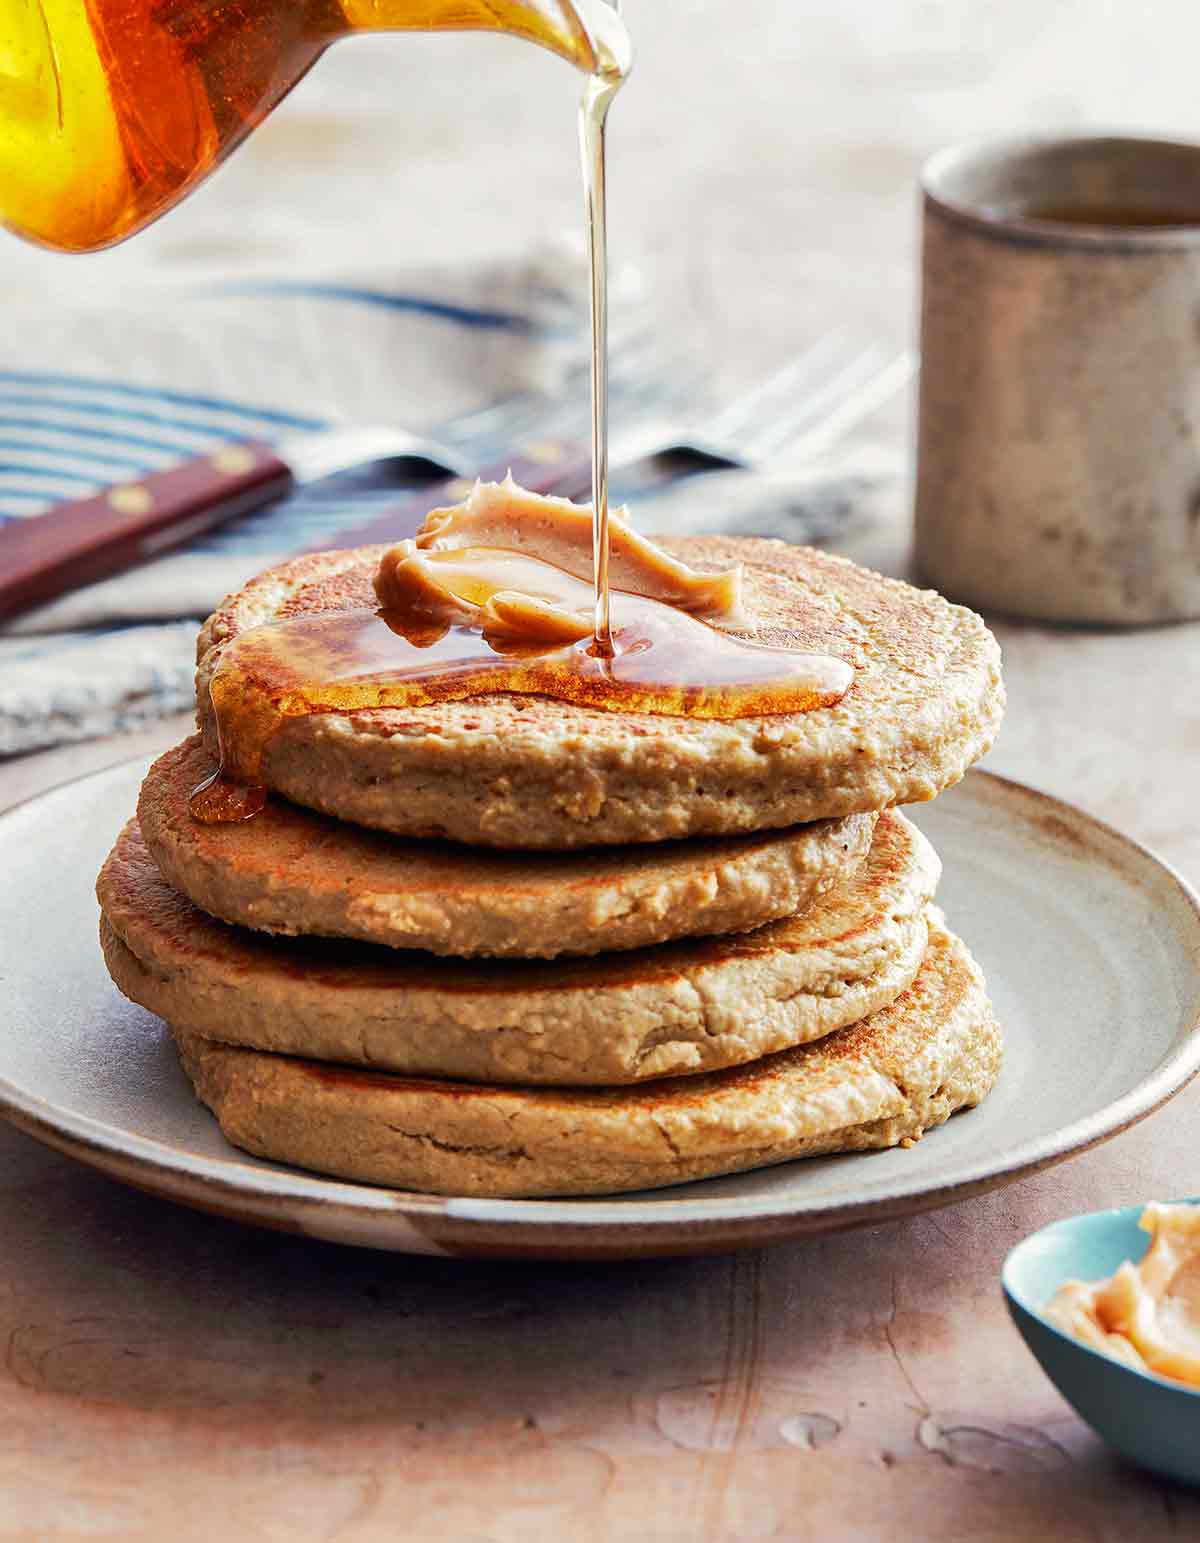 A stack of four gluten-free banana oat pancakes with syrup being poured over the top.